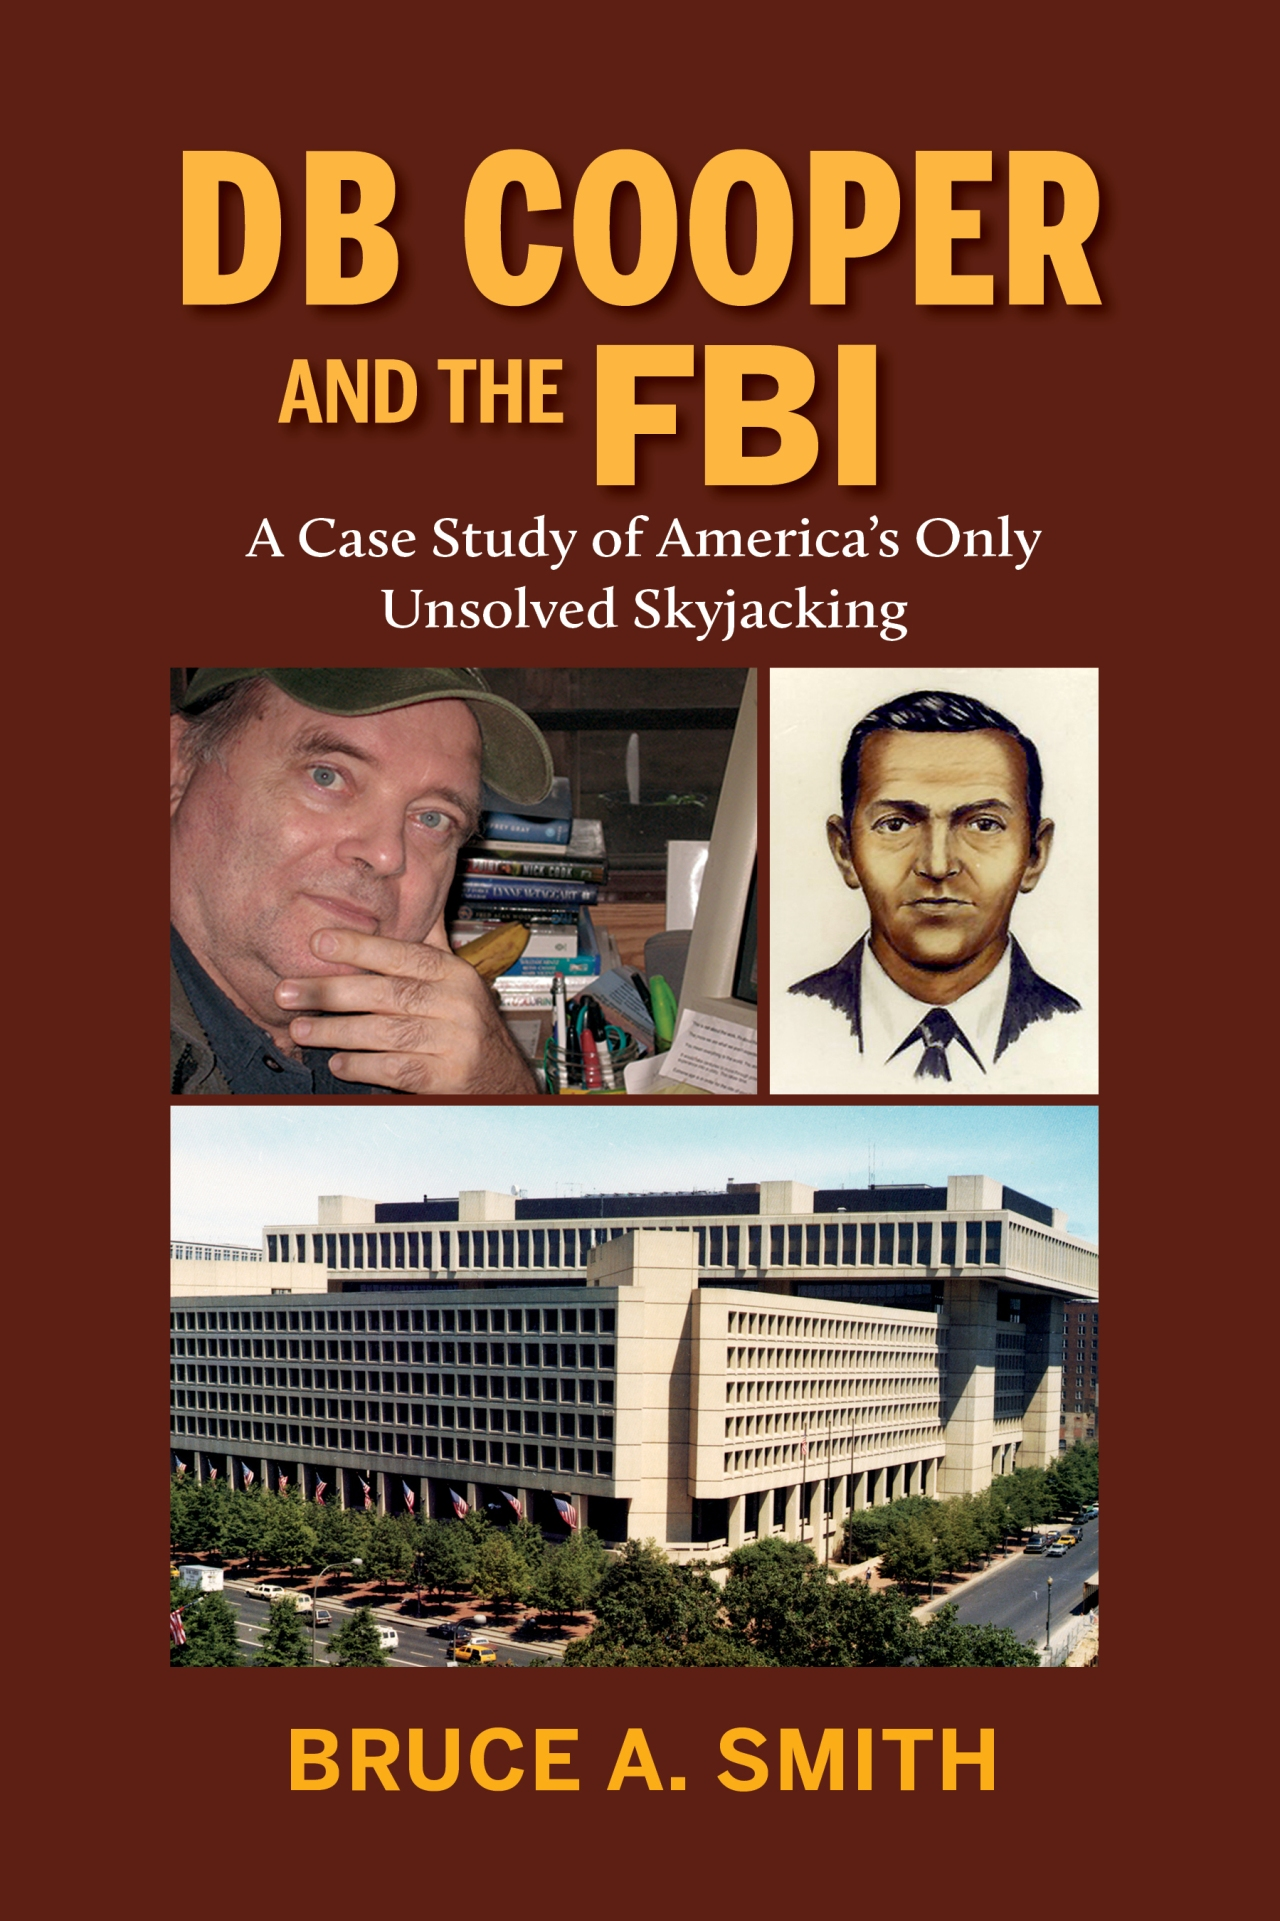 the fbi case study essay This study was launched after the post reported that flawed  yet fbi experts routinely  backing their claims by citing incomplete or misleading statistics drawn from their case.